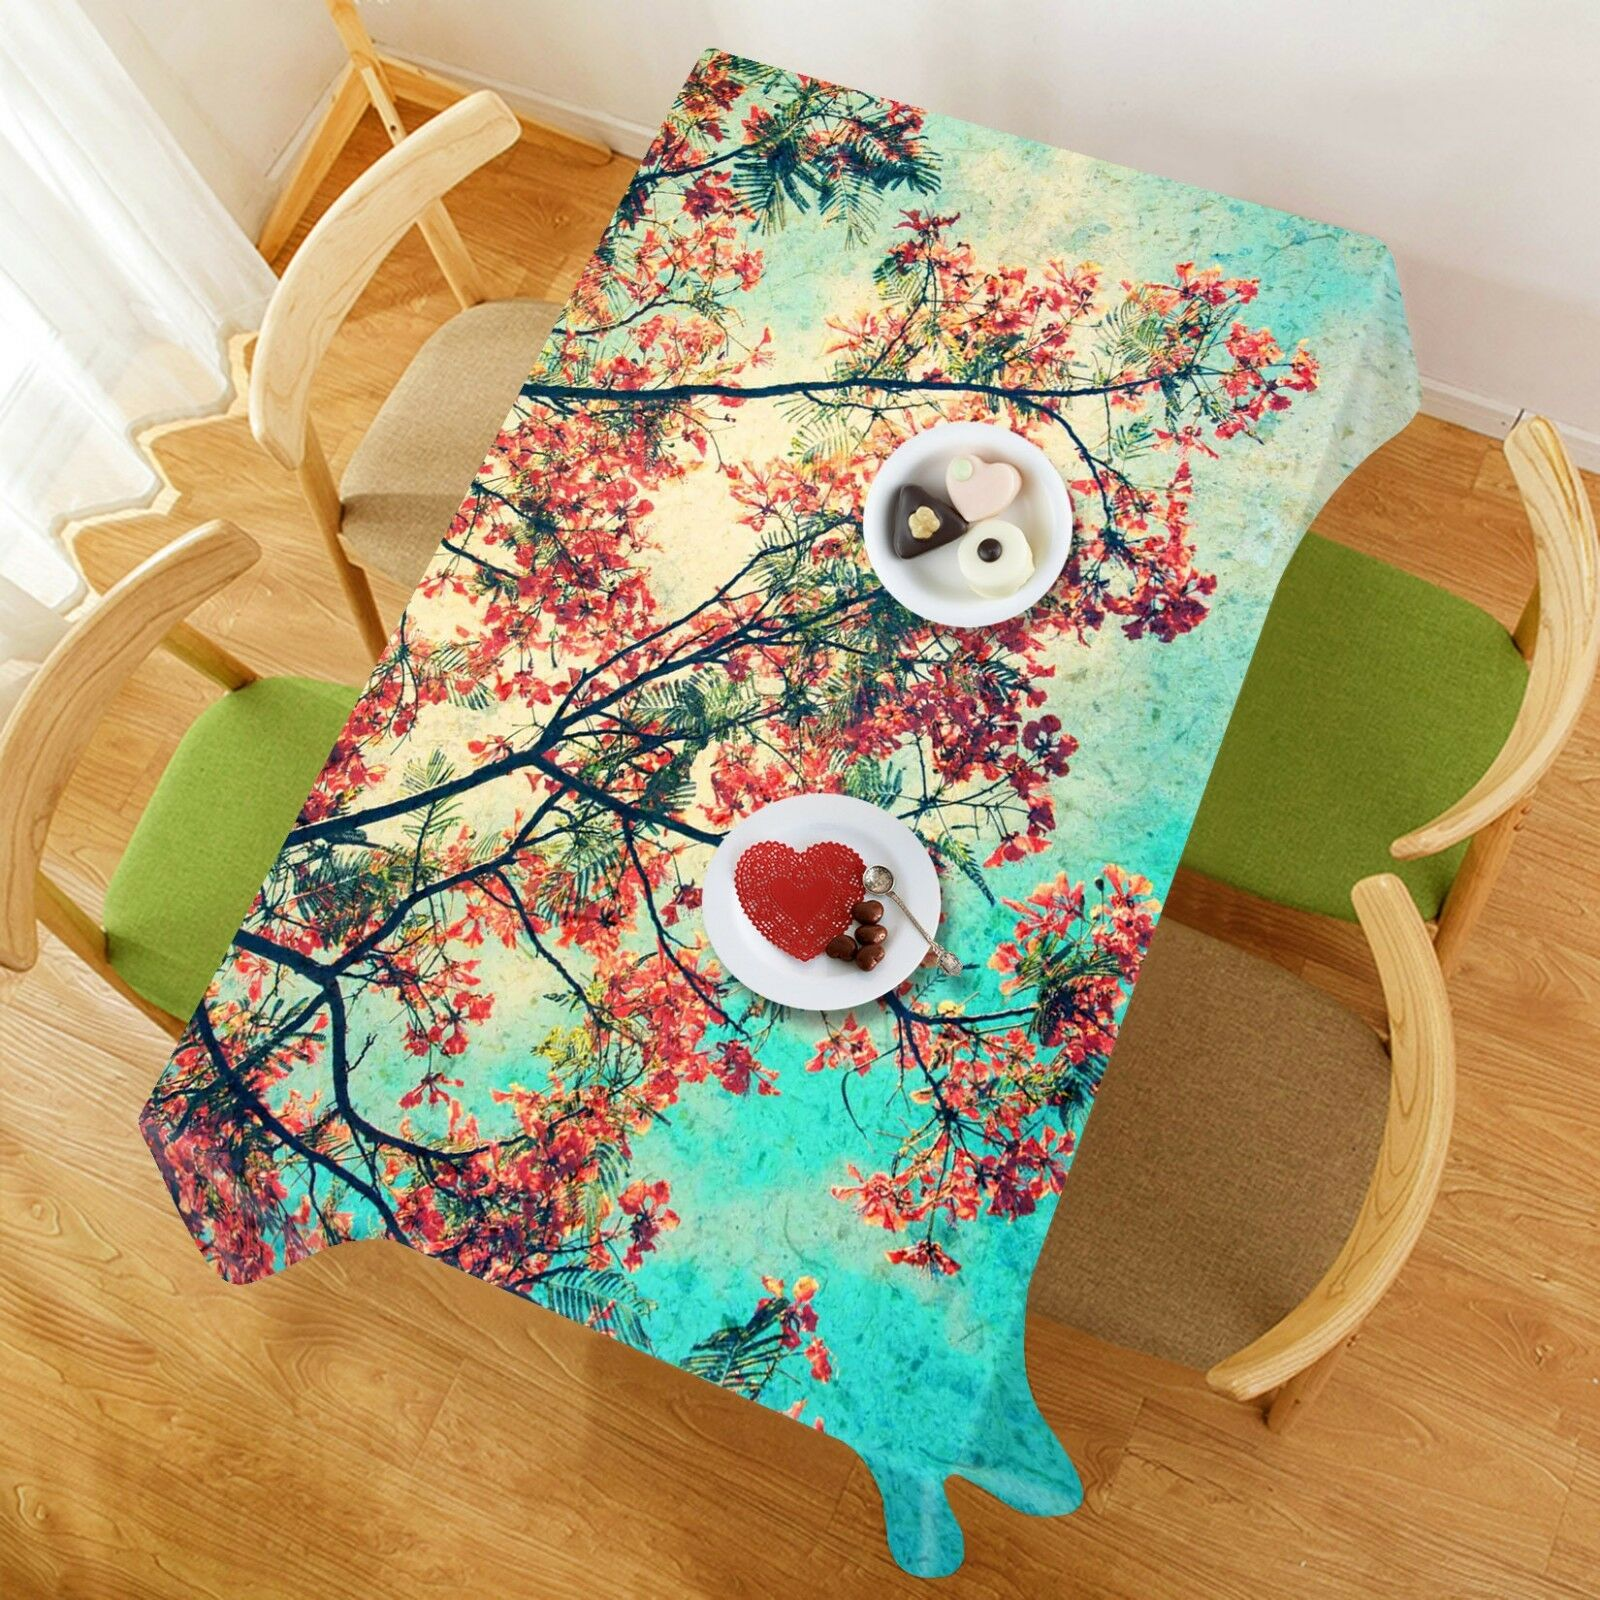 3D Squid Bloom 106 Tablecloth Table Cover Cloth Birthday Party Event AJ Lemon